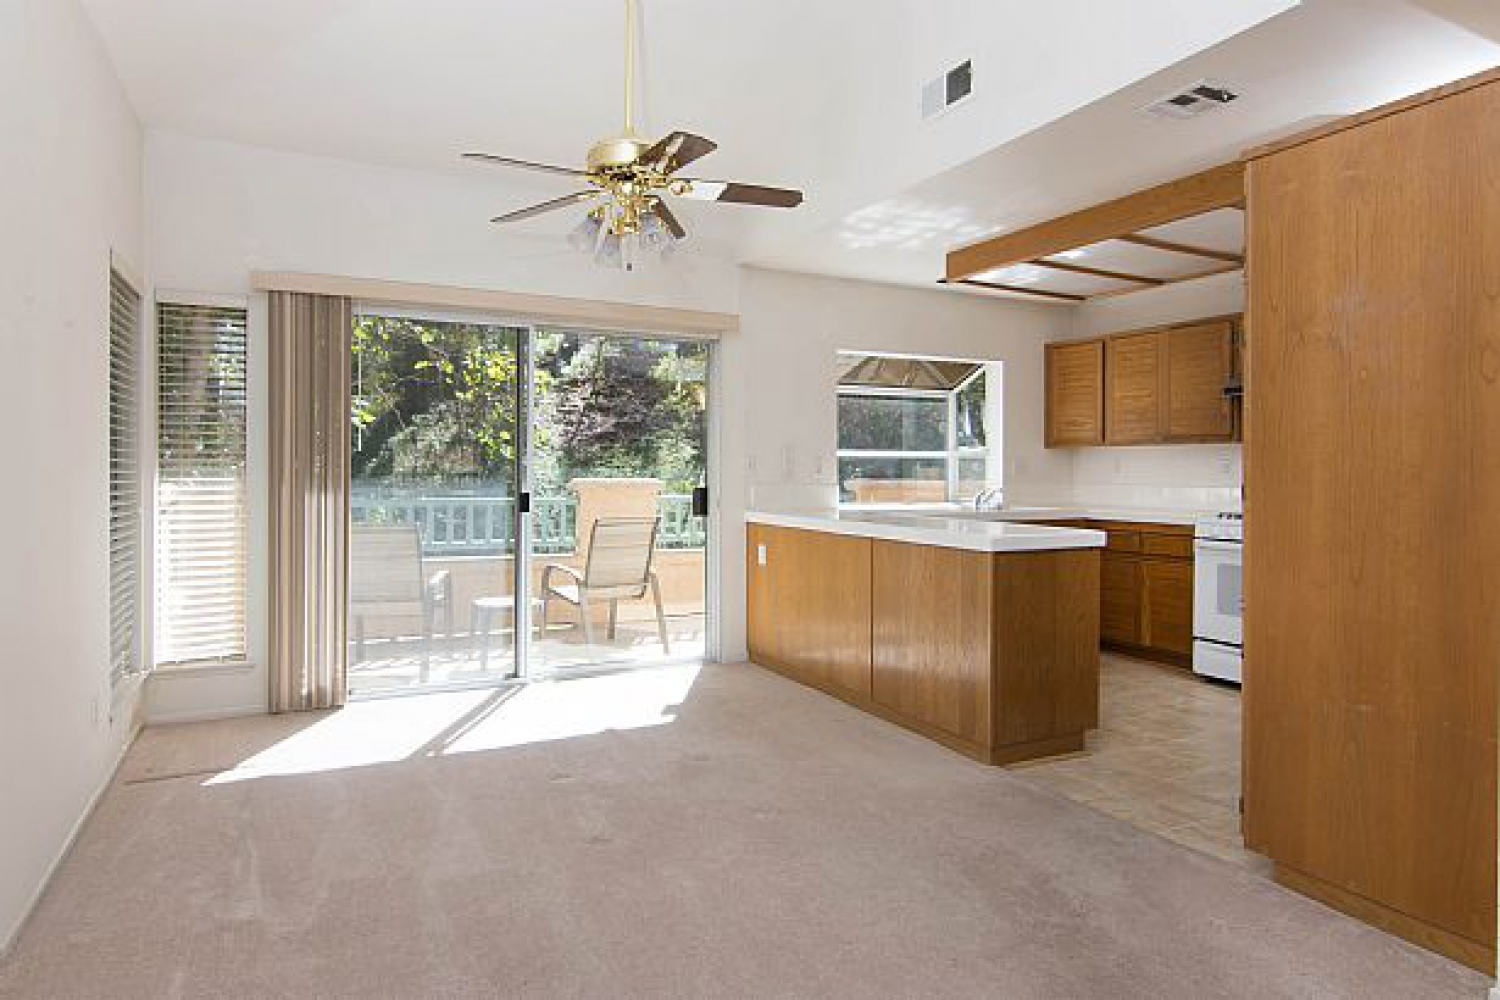 23930 Arroyo Park Dr | Photo 6